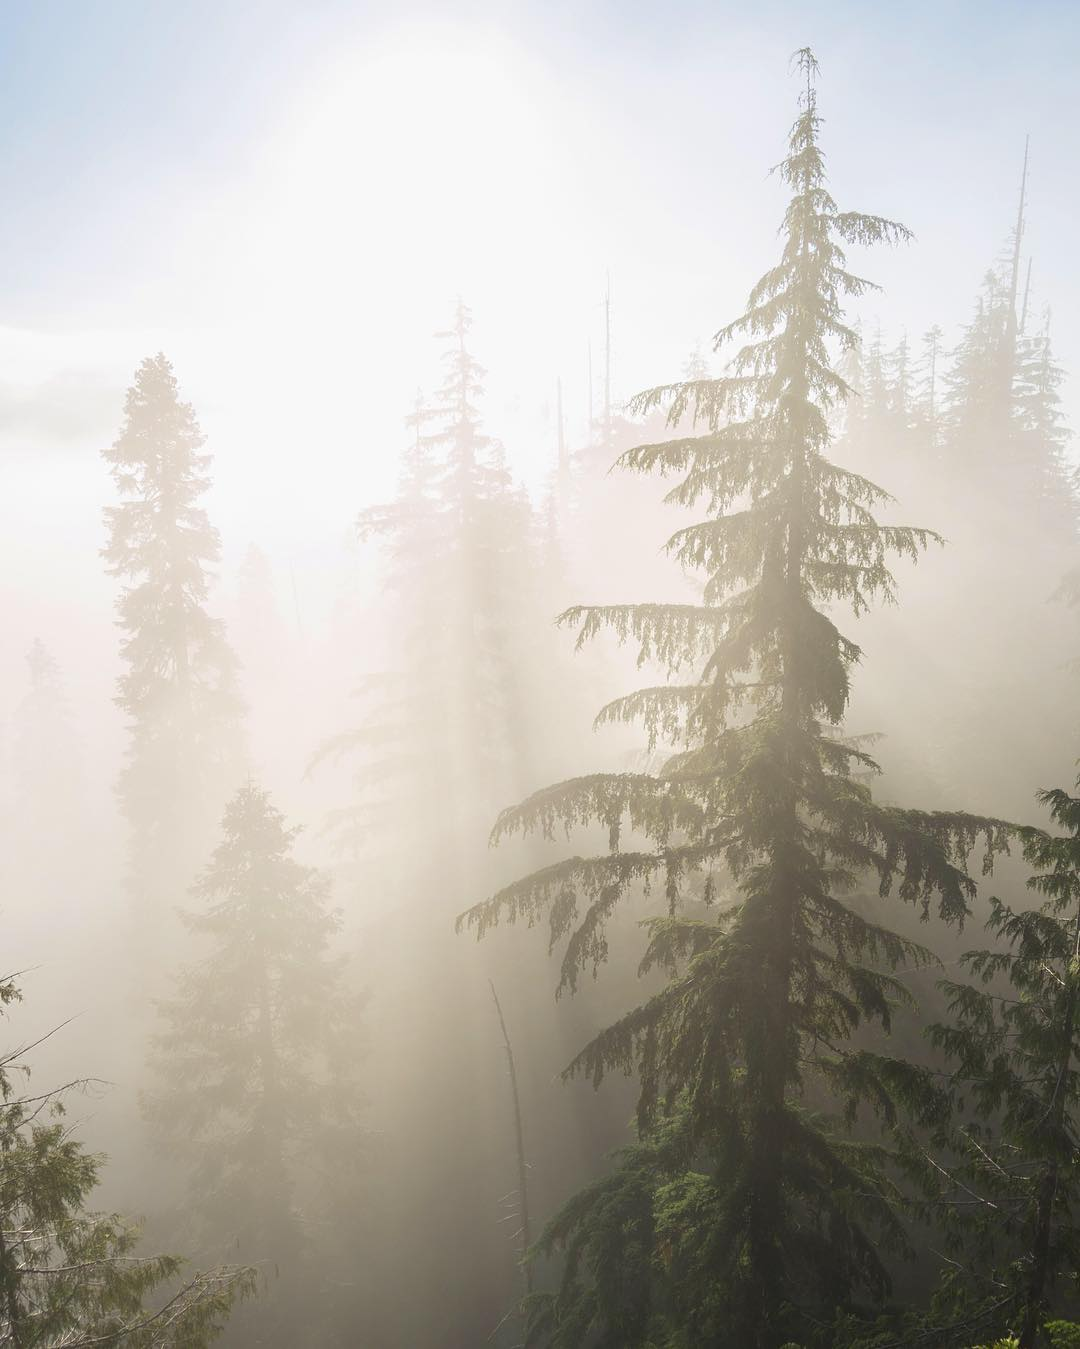 Foggy mornings in Olympic National Forest.  #NatureOfProof photo by @nick_terrel